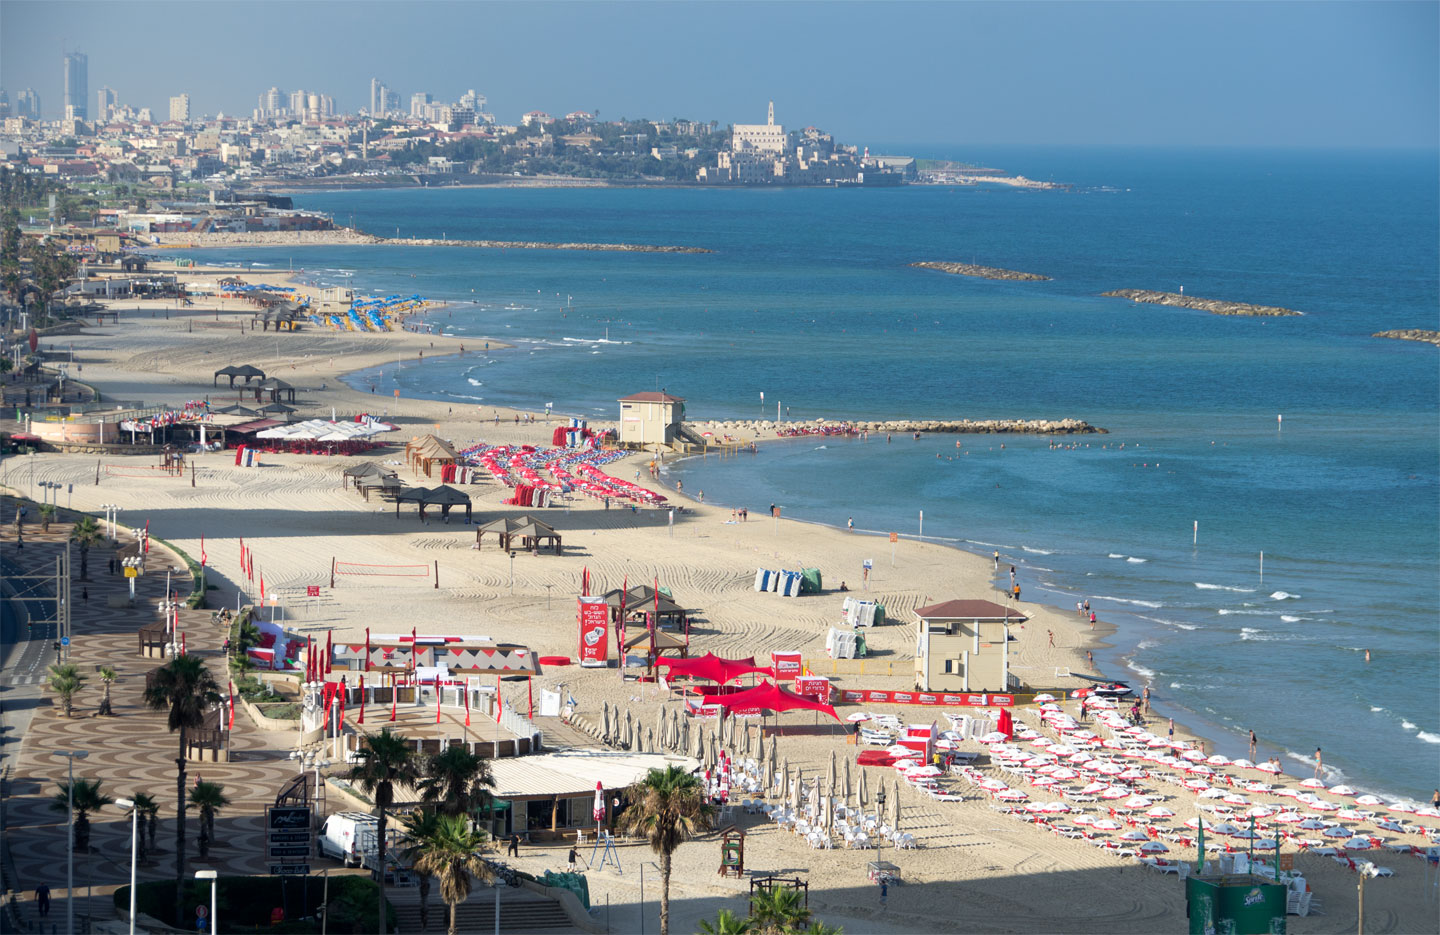 Postcard from Israel: Jaffa and the Ottoman Train Station